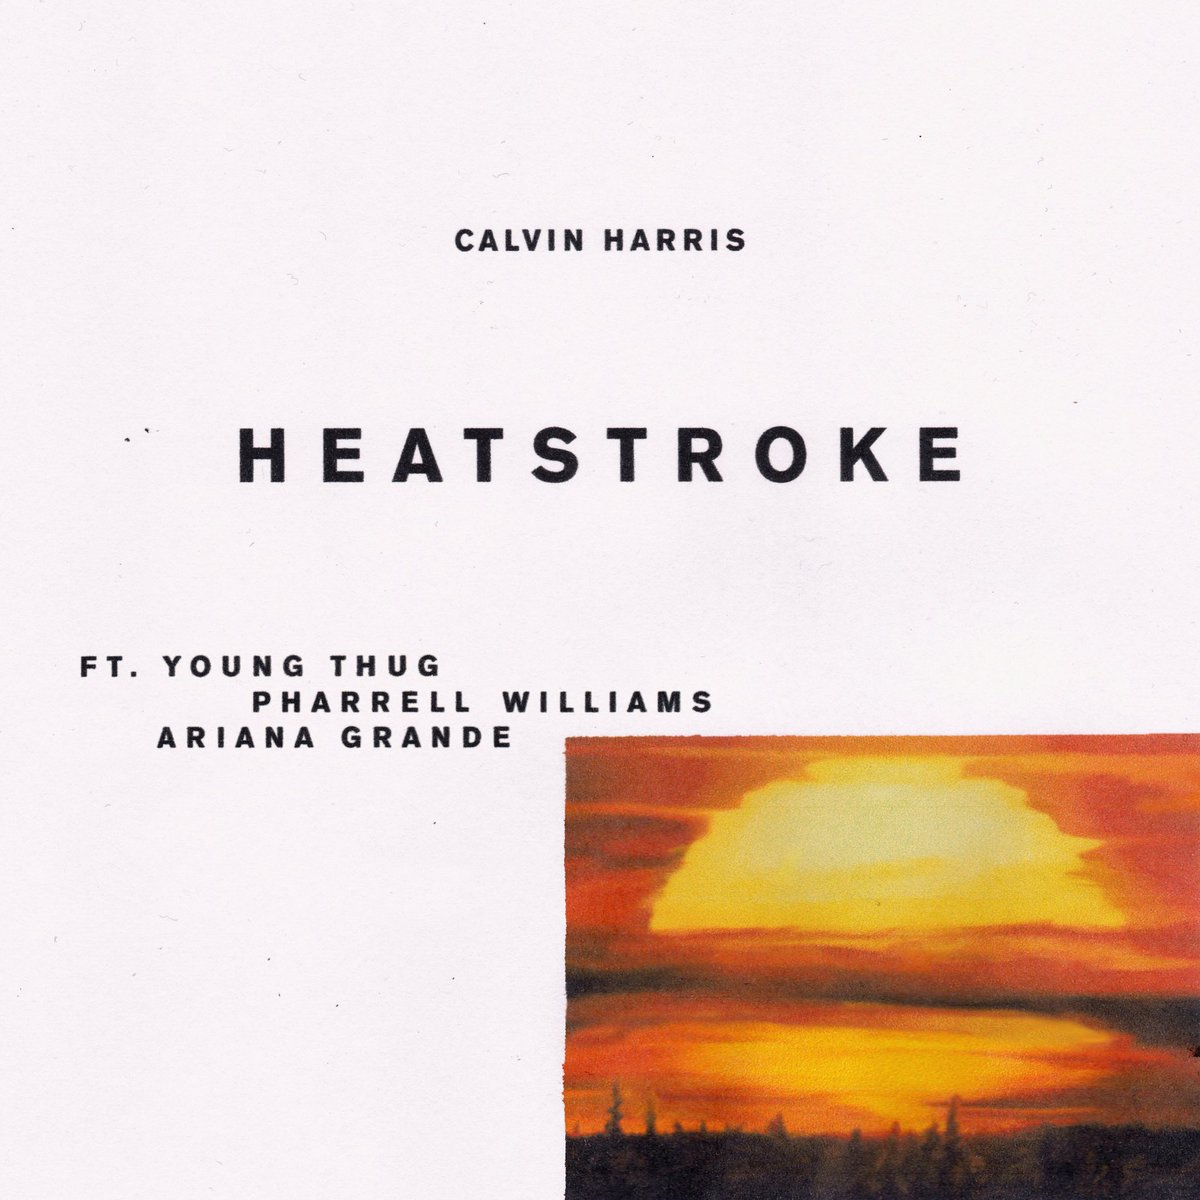 RT @CalvinHarris: CALVIN HARRIS // YOUNG THUG // PHARRELL // ARIANA GRANDE https://t.co/9Ups0Eu53O